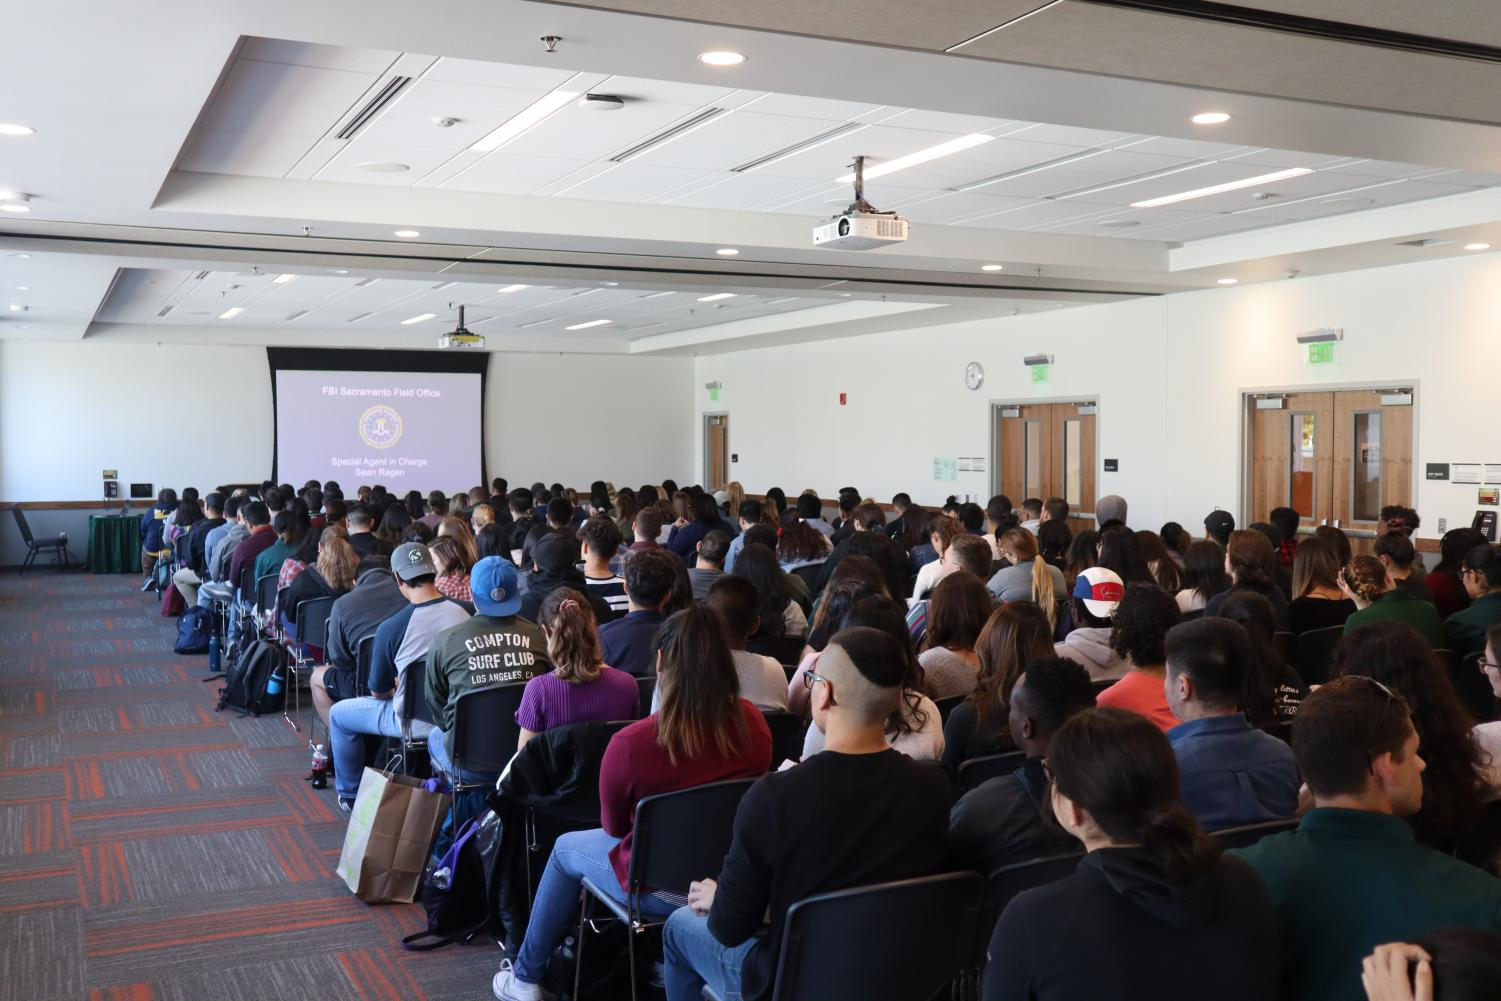 More than 100 students gathered Tuesday in the University Union's Cottonwood Suite for the FBI Collegiate Citizens Academy. The event, designed to give students the information and resources they need to pursue a career with the FBI, will take place every Tuesday during the month of October.